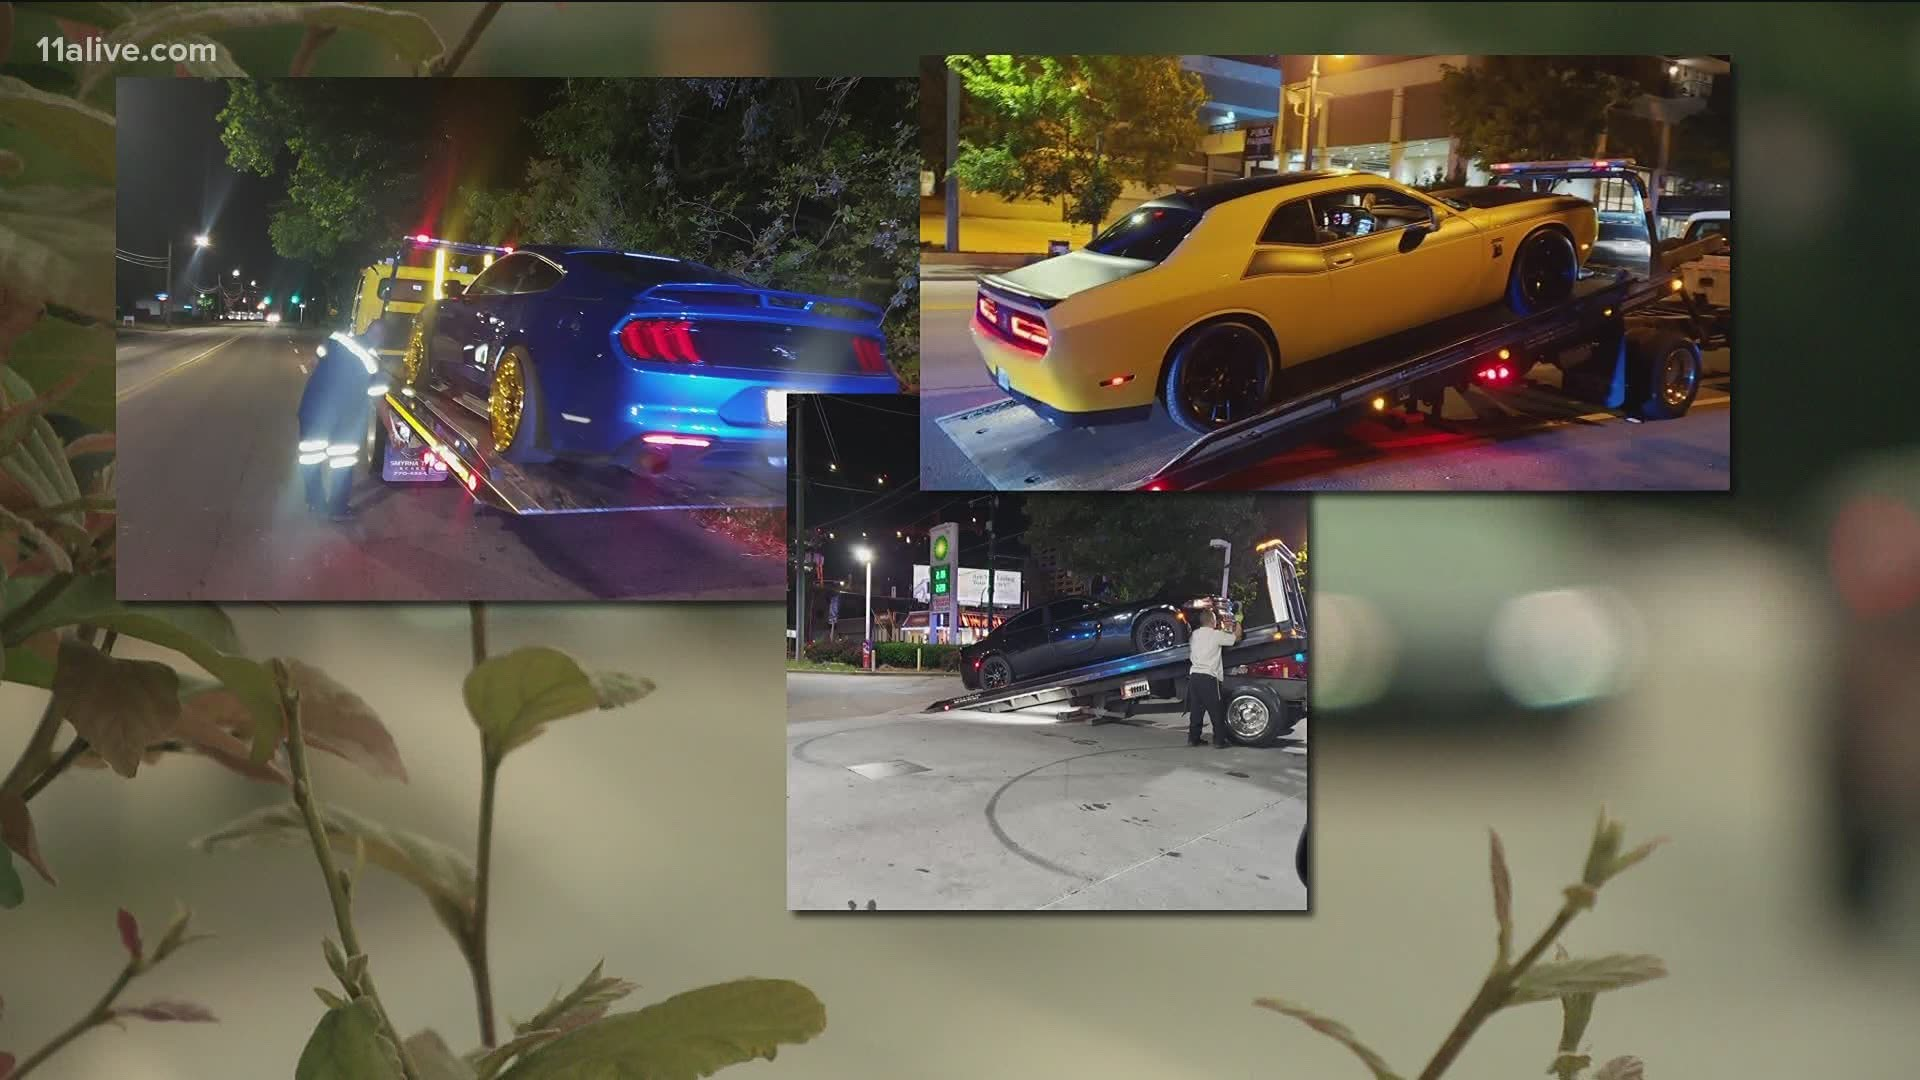 Atlanta Street Racing Arrests During Coronavirus Pandemic 11alive Com